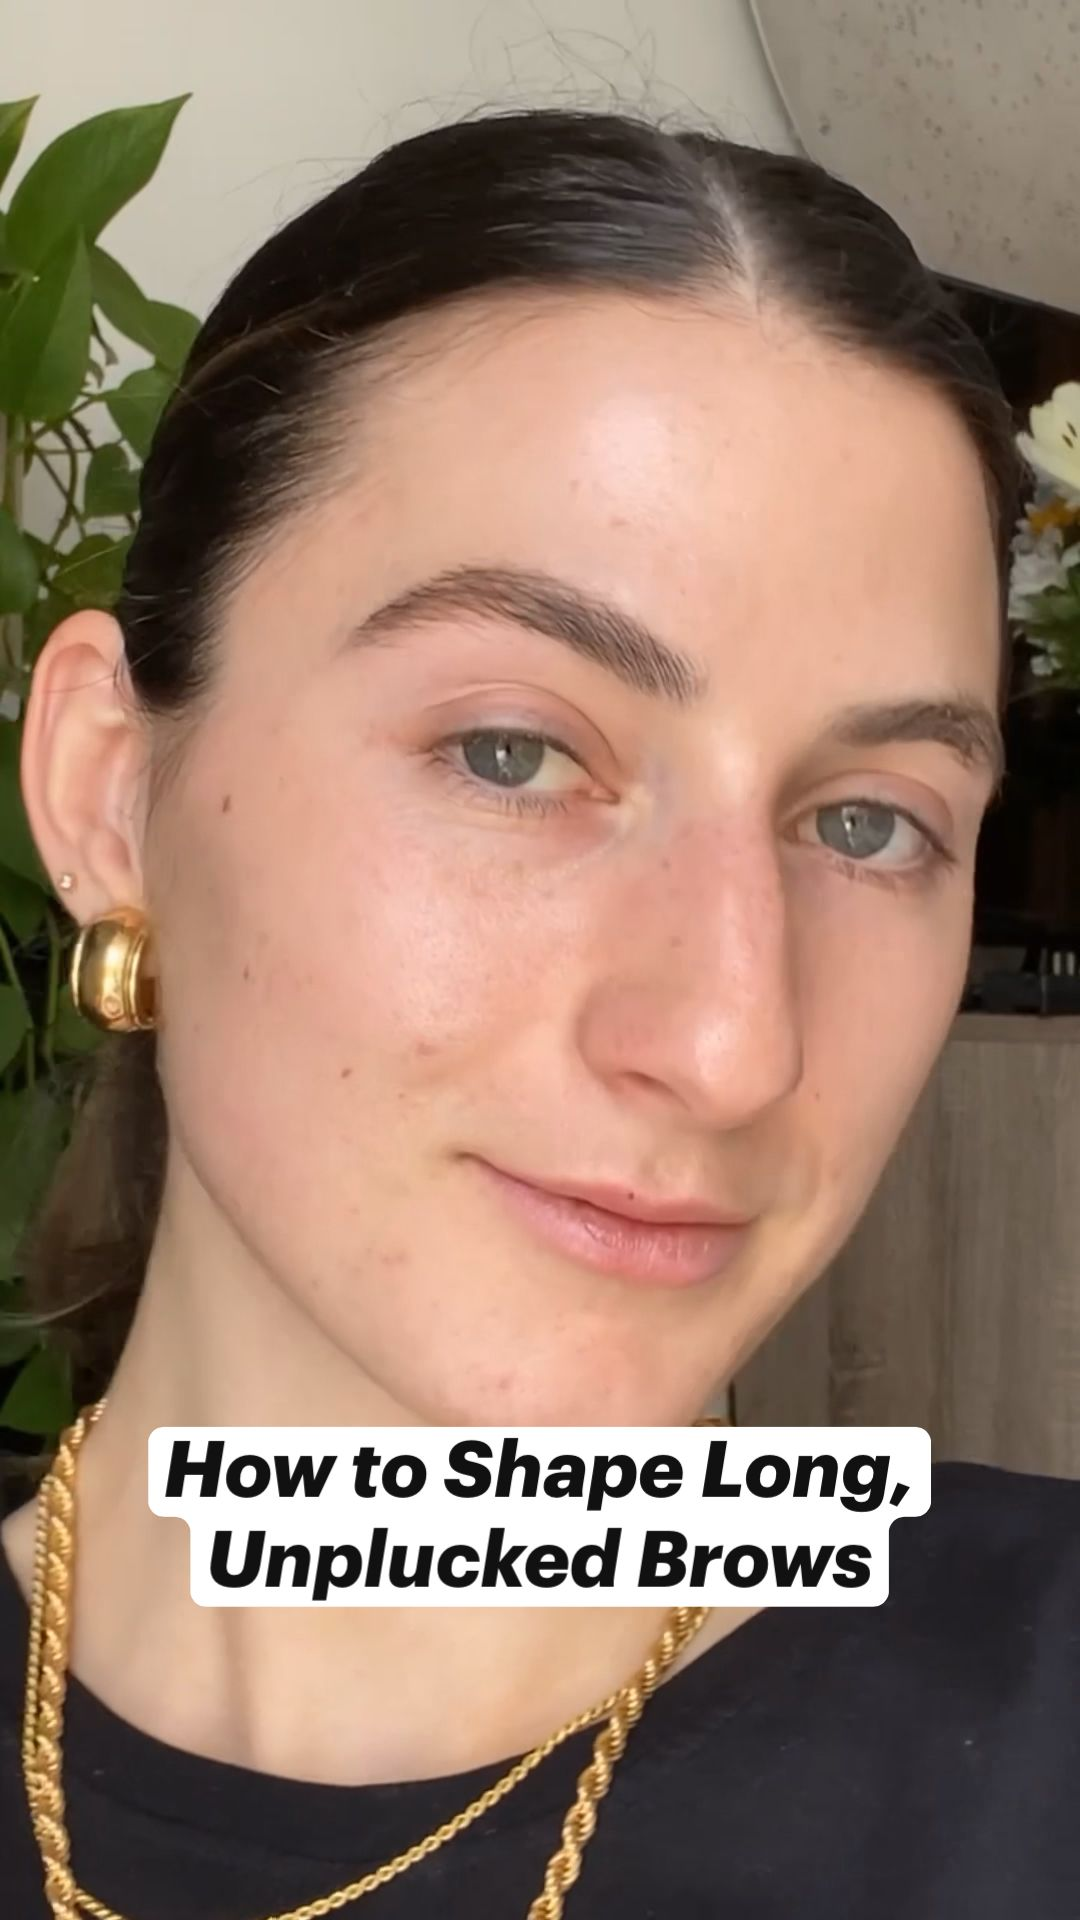 How to Shape Long, Unplucked Brows